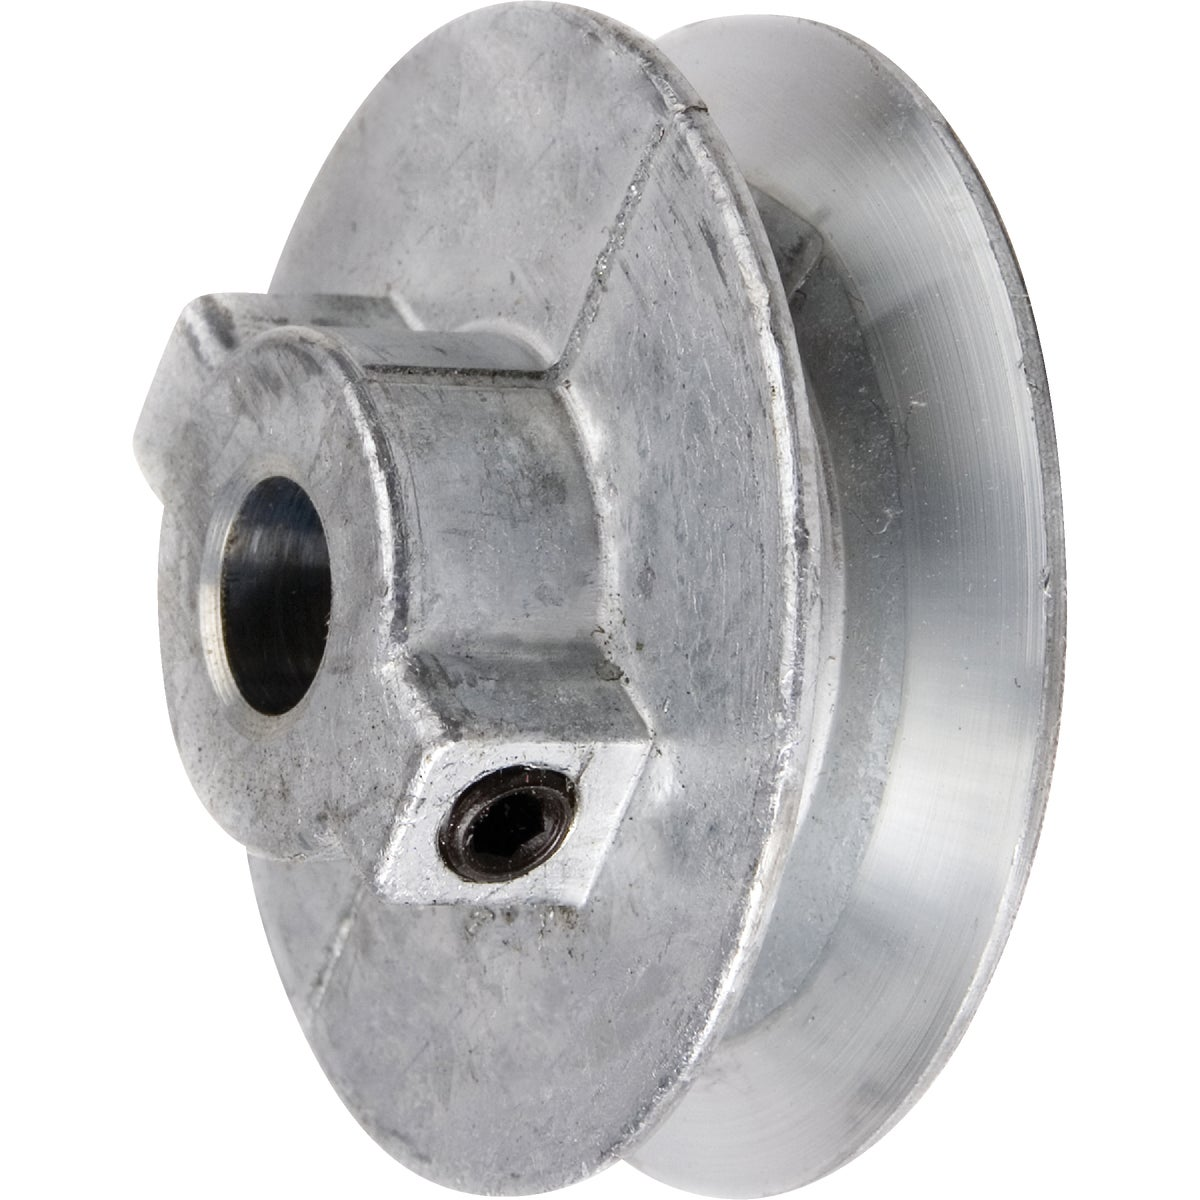 7X3/4 PULLEY - 700A7 by Chicago Die Casting